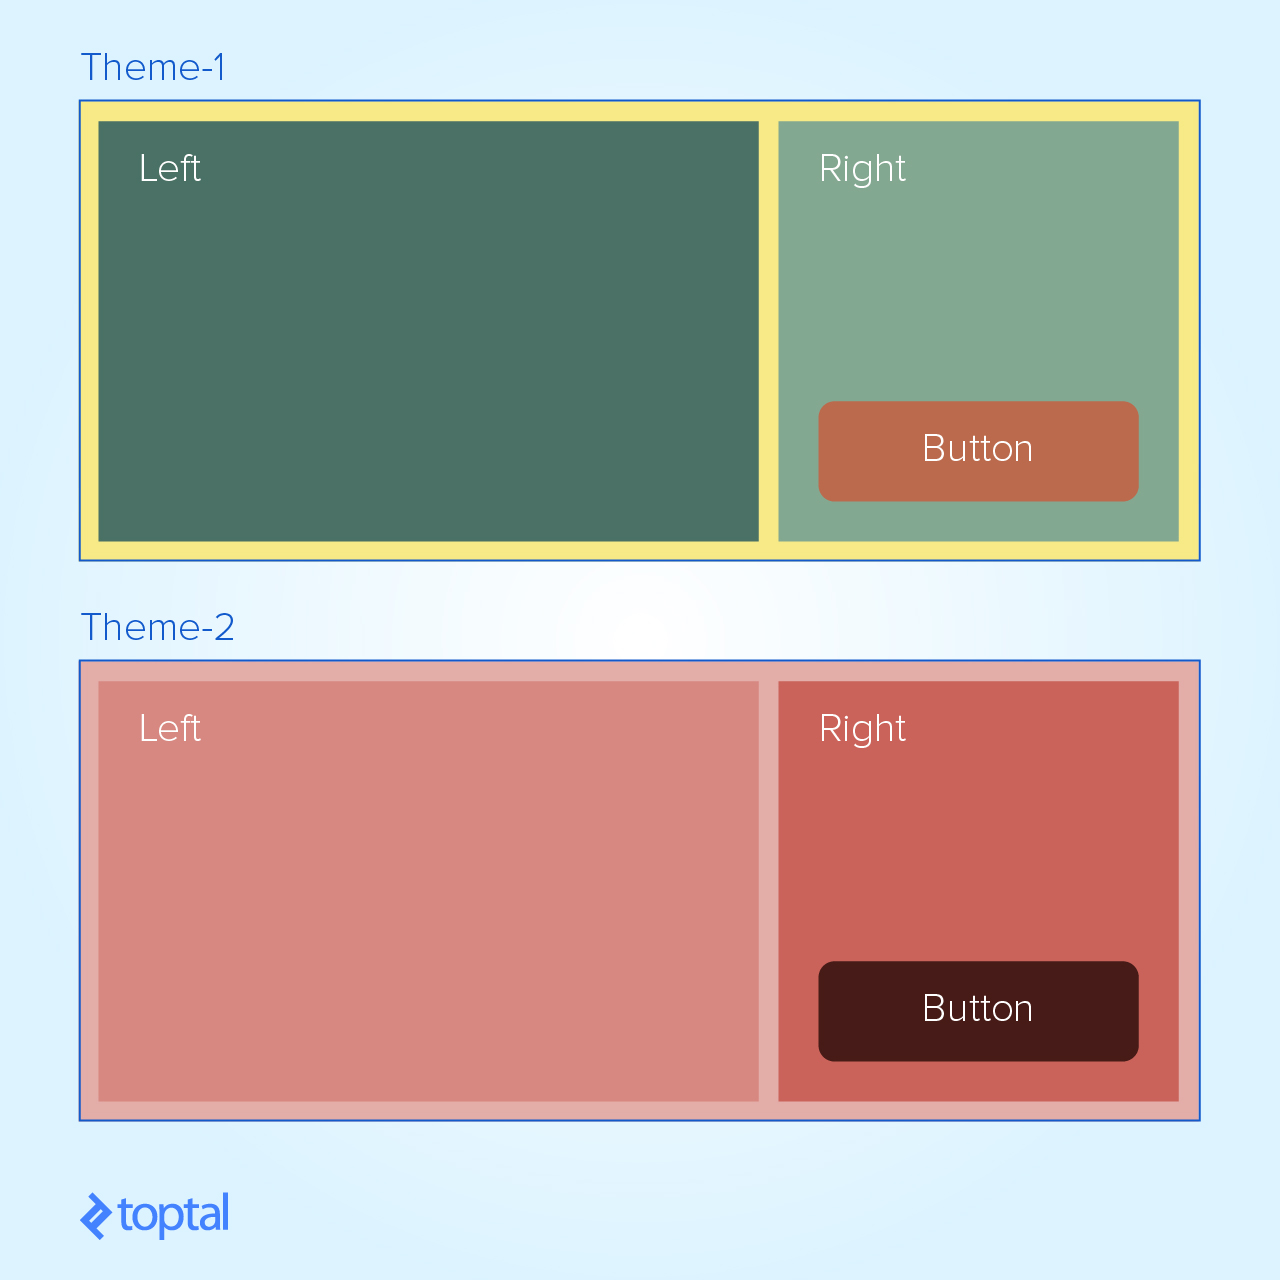 Comparison of theme-1 and theme-2 generated using Sass